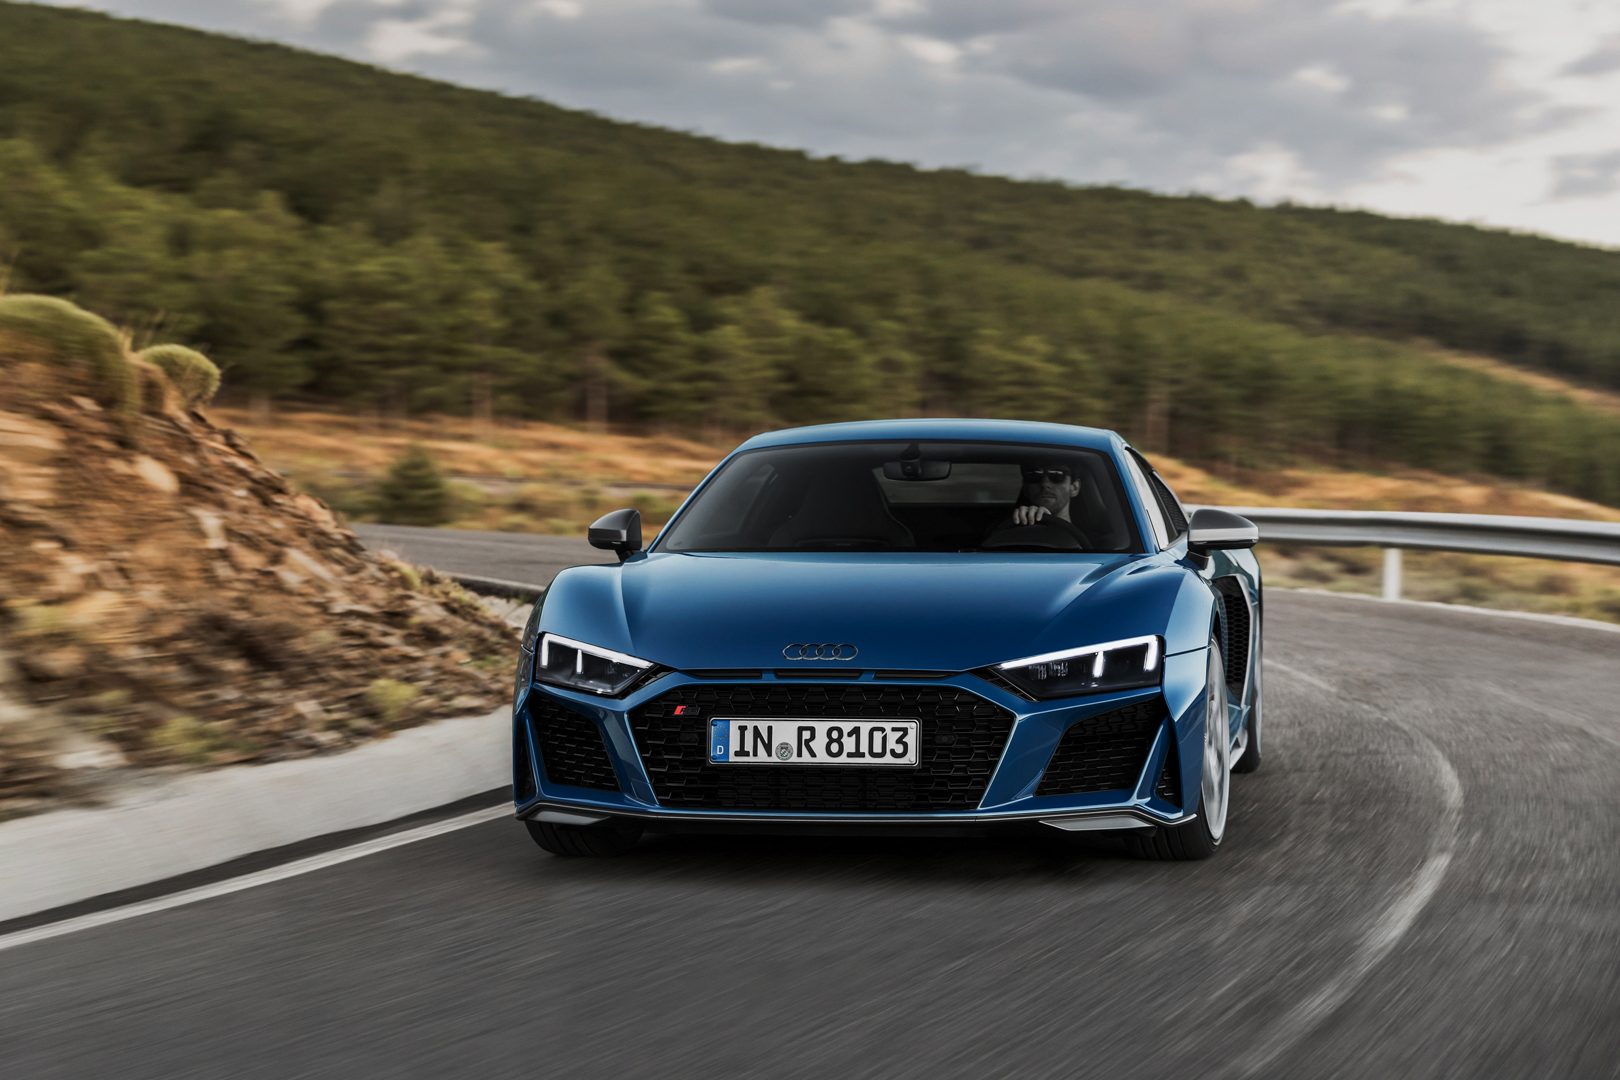 Audi R8 V10 Facelift Is Here Revives Bmw Rival Argument Mouse Diamond Chrome  Last Stock Packing The Same 52 Liter Naturally Aspirated Just With New States Of Tune Newly Facelifted Makes 570 Hp And Plus